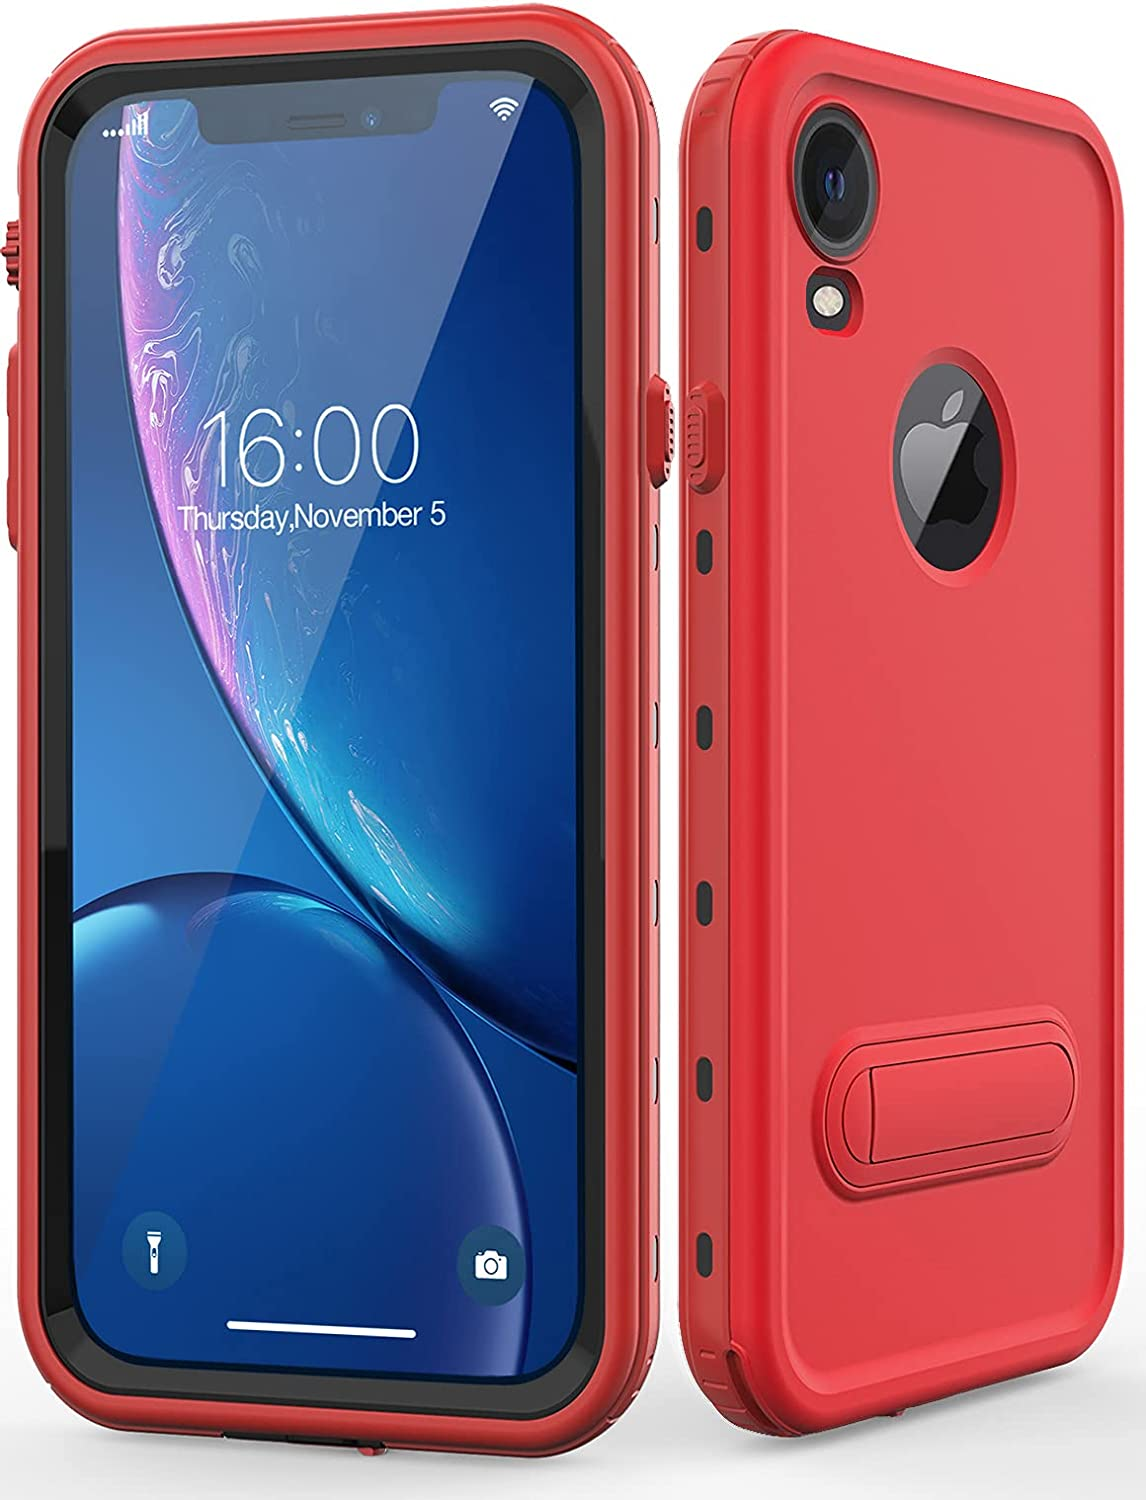 Diverbox for iPhone xr Case Waterproof,Shockproof Dustproof IP68 Full-Body Sturdy with Kickstand Case Built-in Screen Protector,Underwater Full Sealed Cover Protective for iPhone xr (Red)